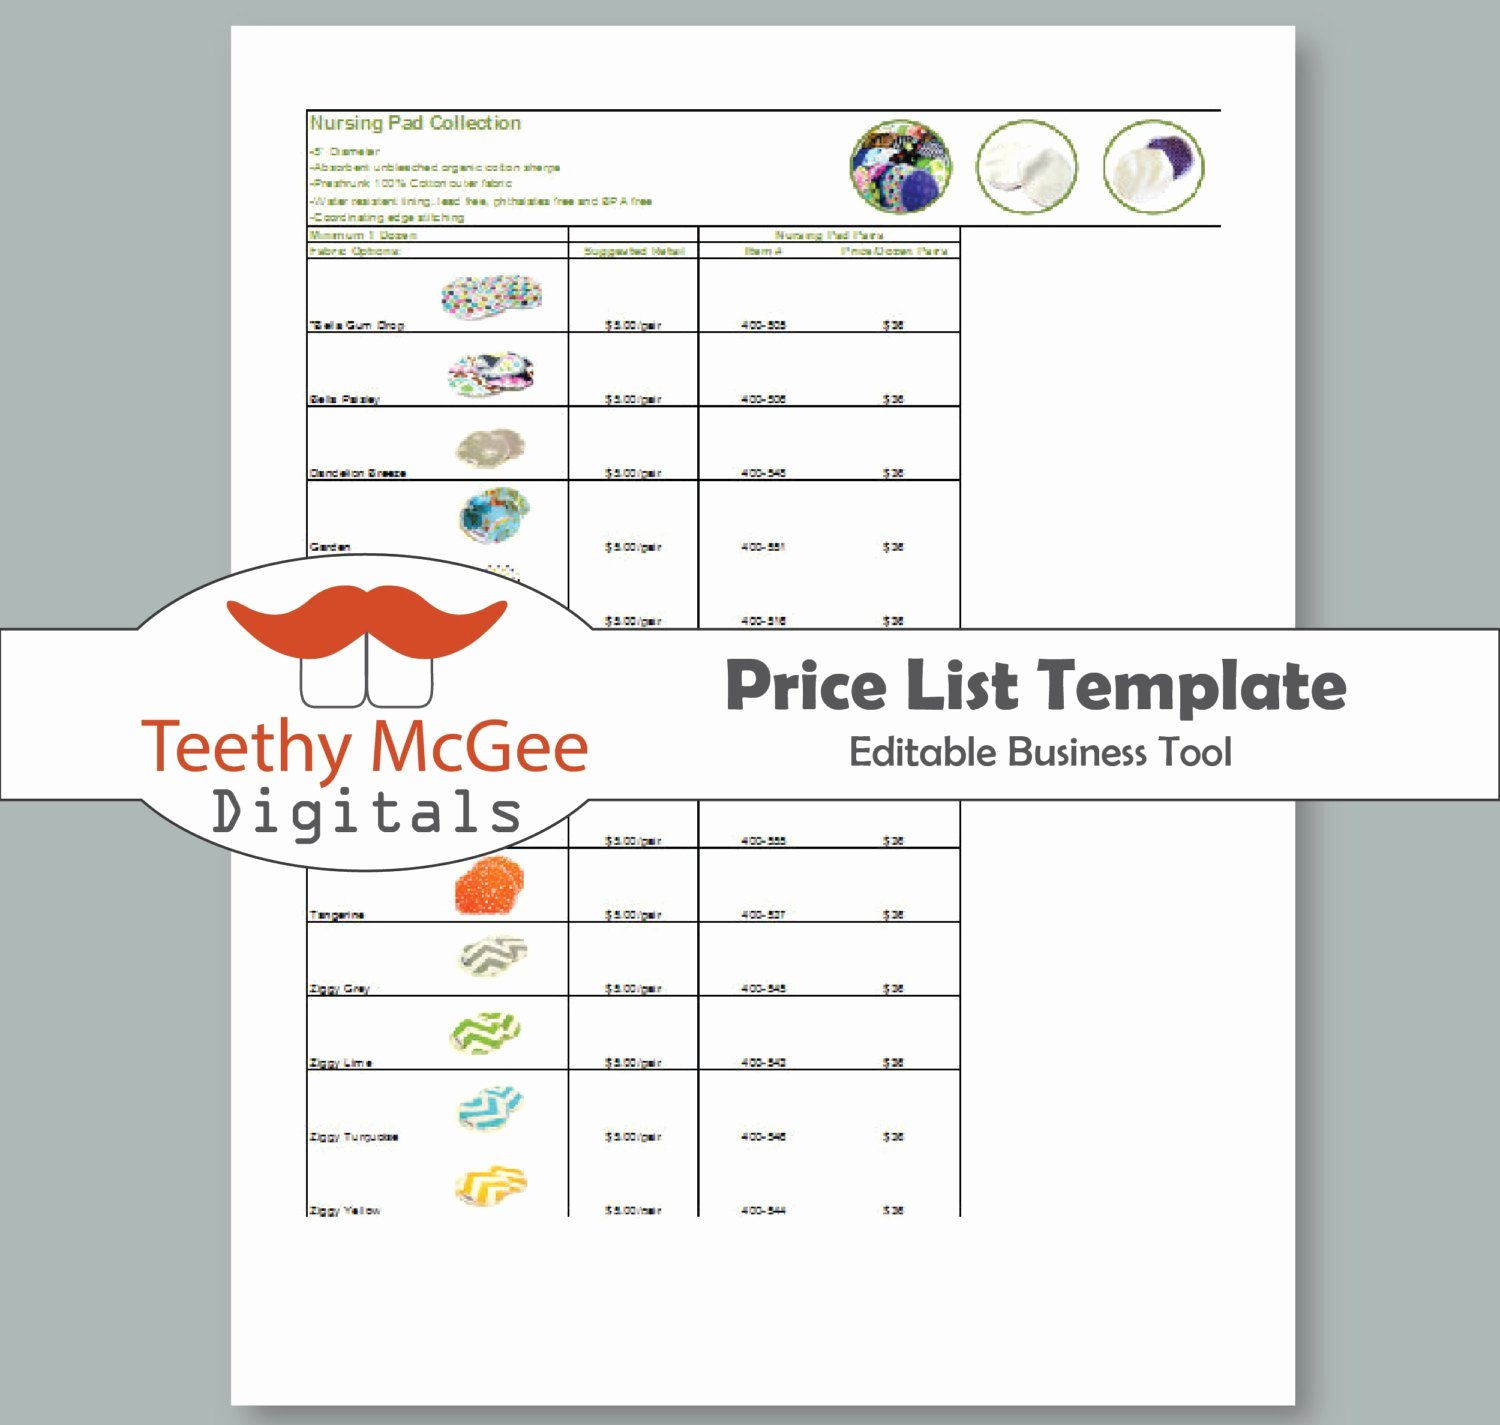 image regarding Lularoe Price List Printable named Selling price Record Template Fast Obtain by way of Teethymcgeedigitals